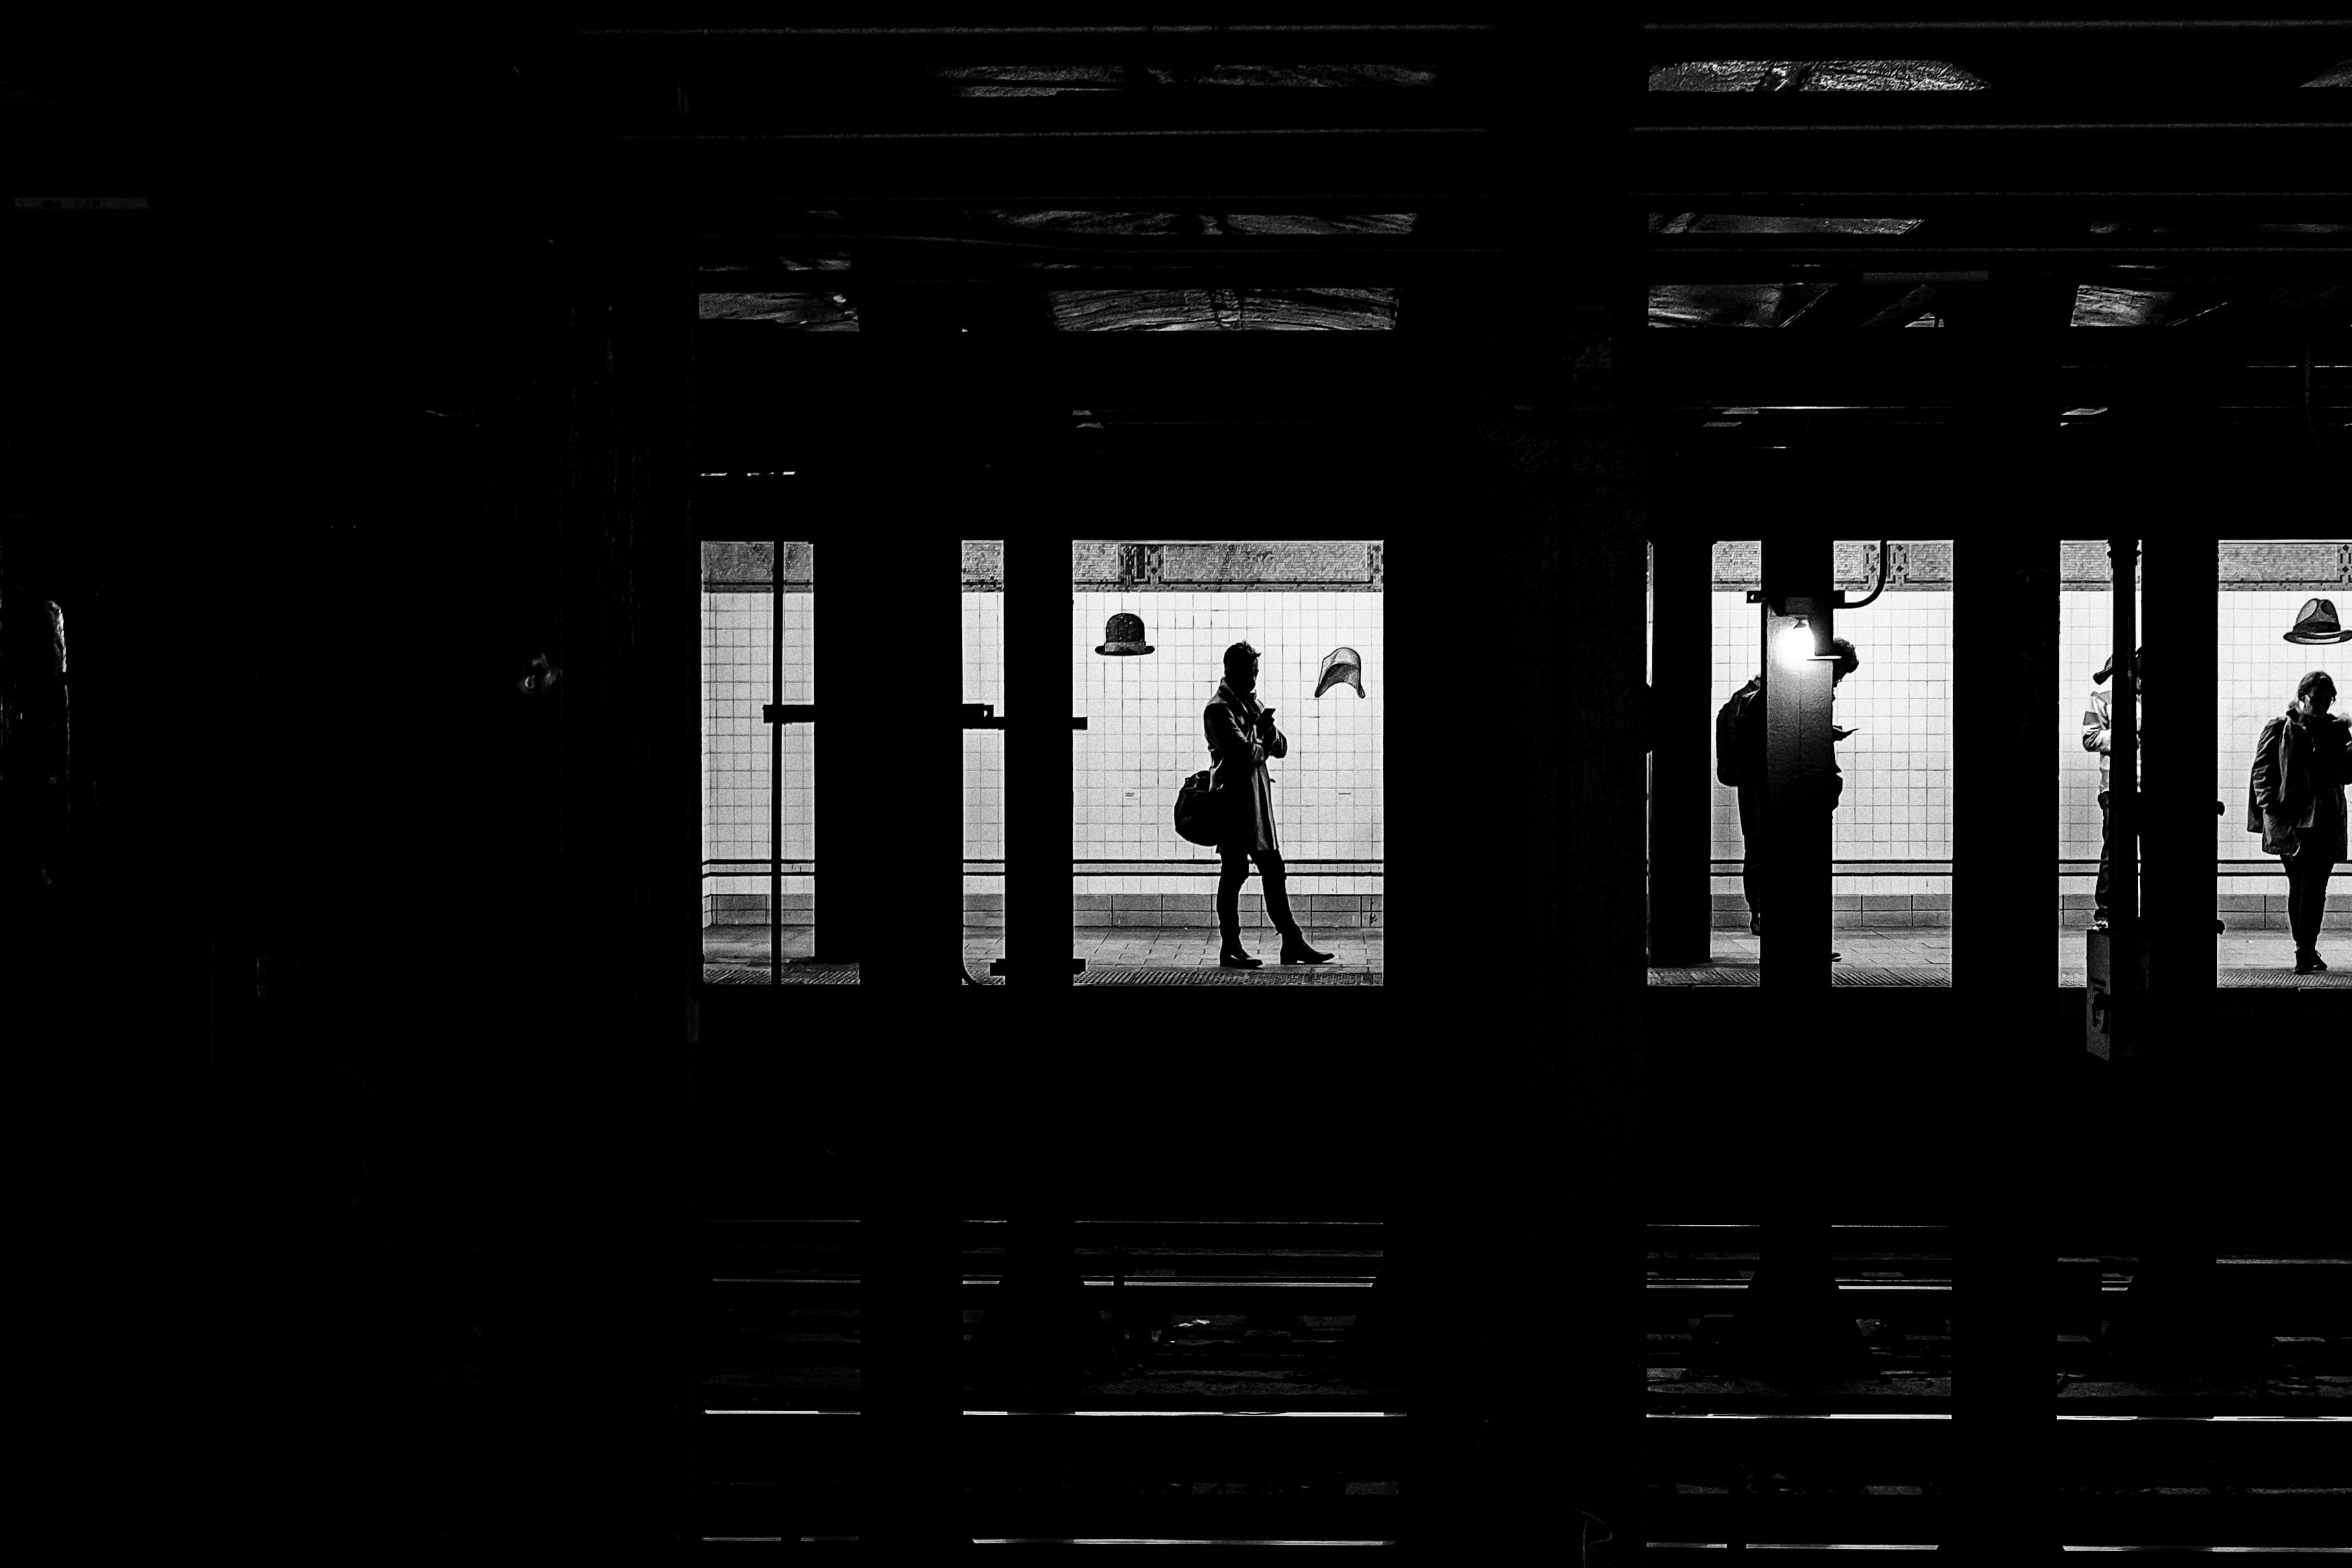 silhouette of person inside room